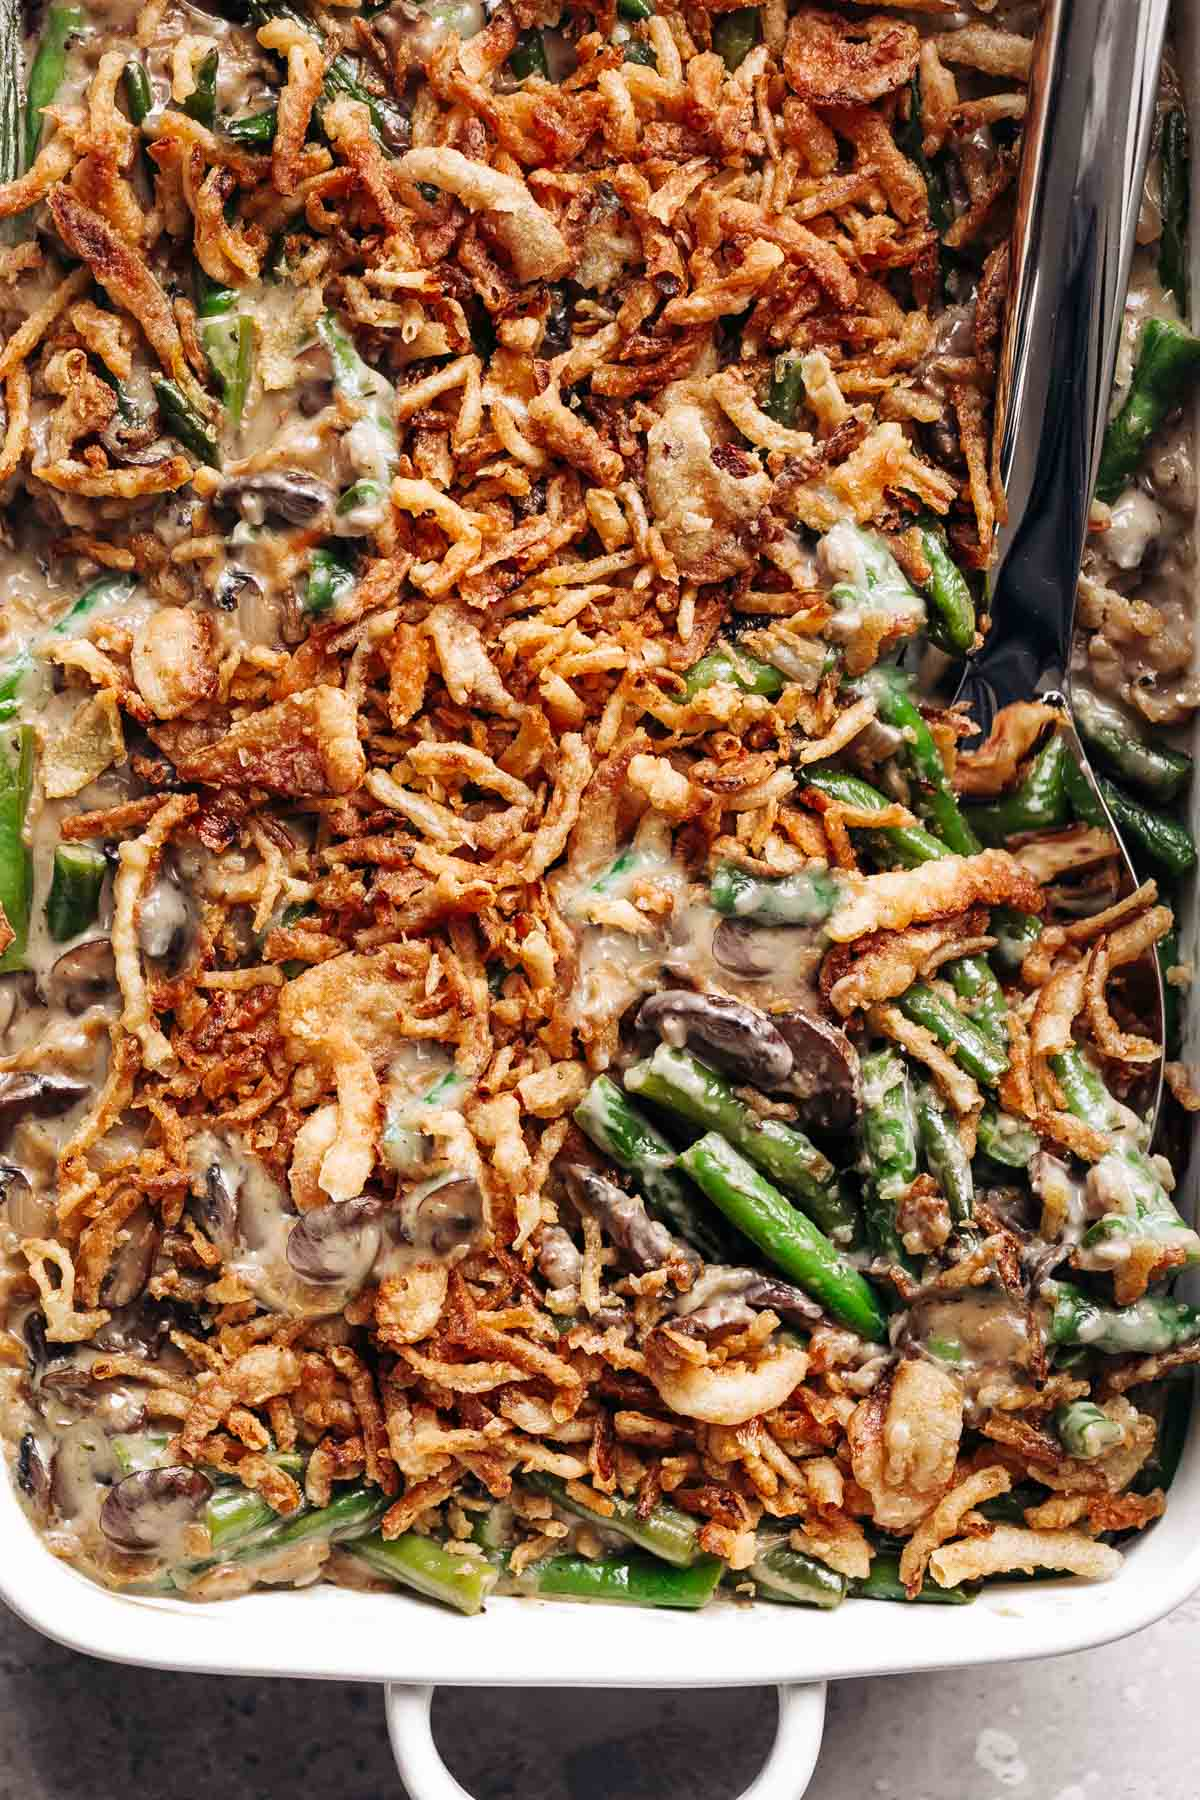 Green Bean Casserole with homemade cream of mushroom soup and French fried onions!